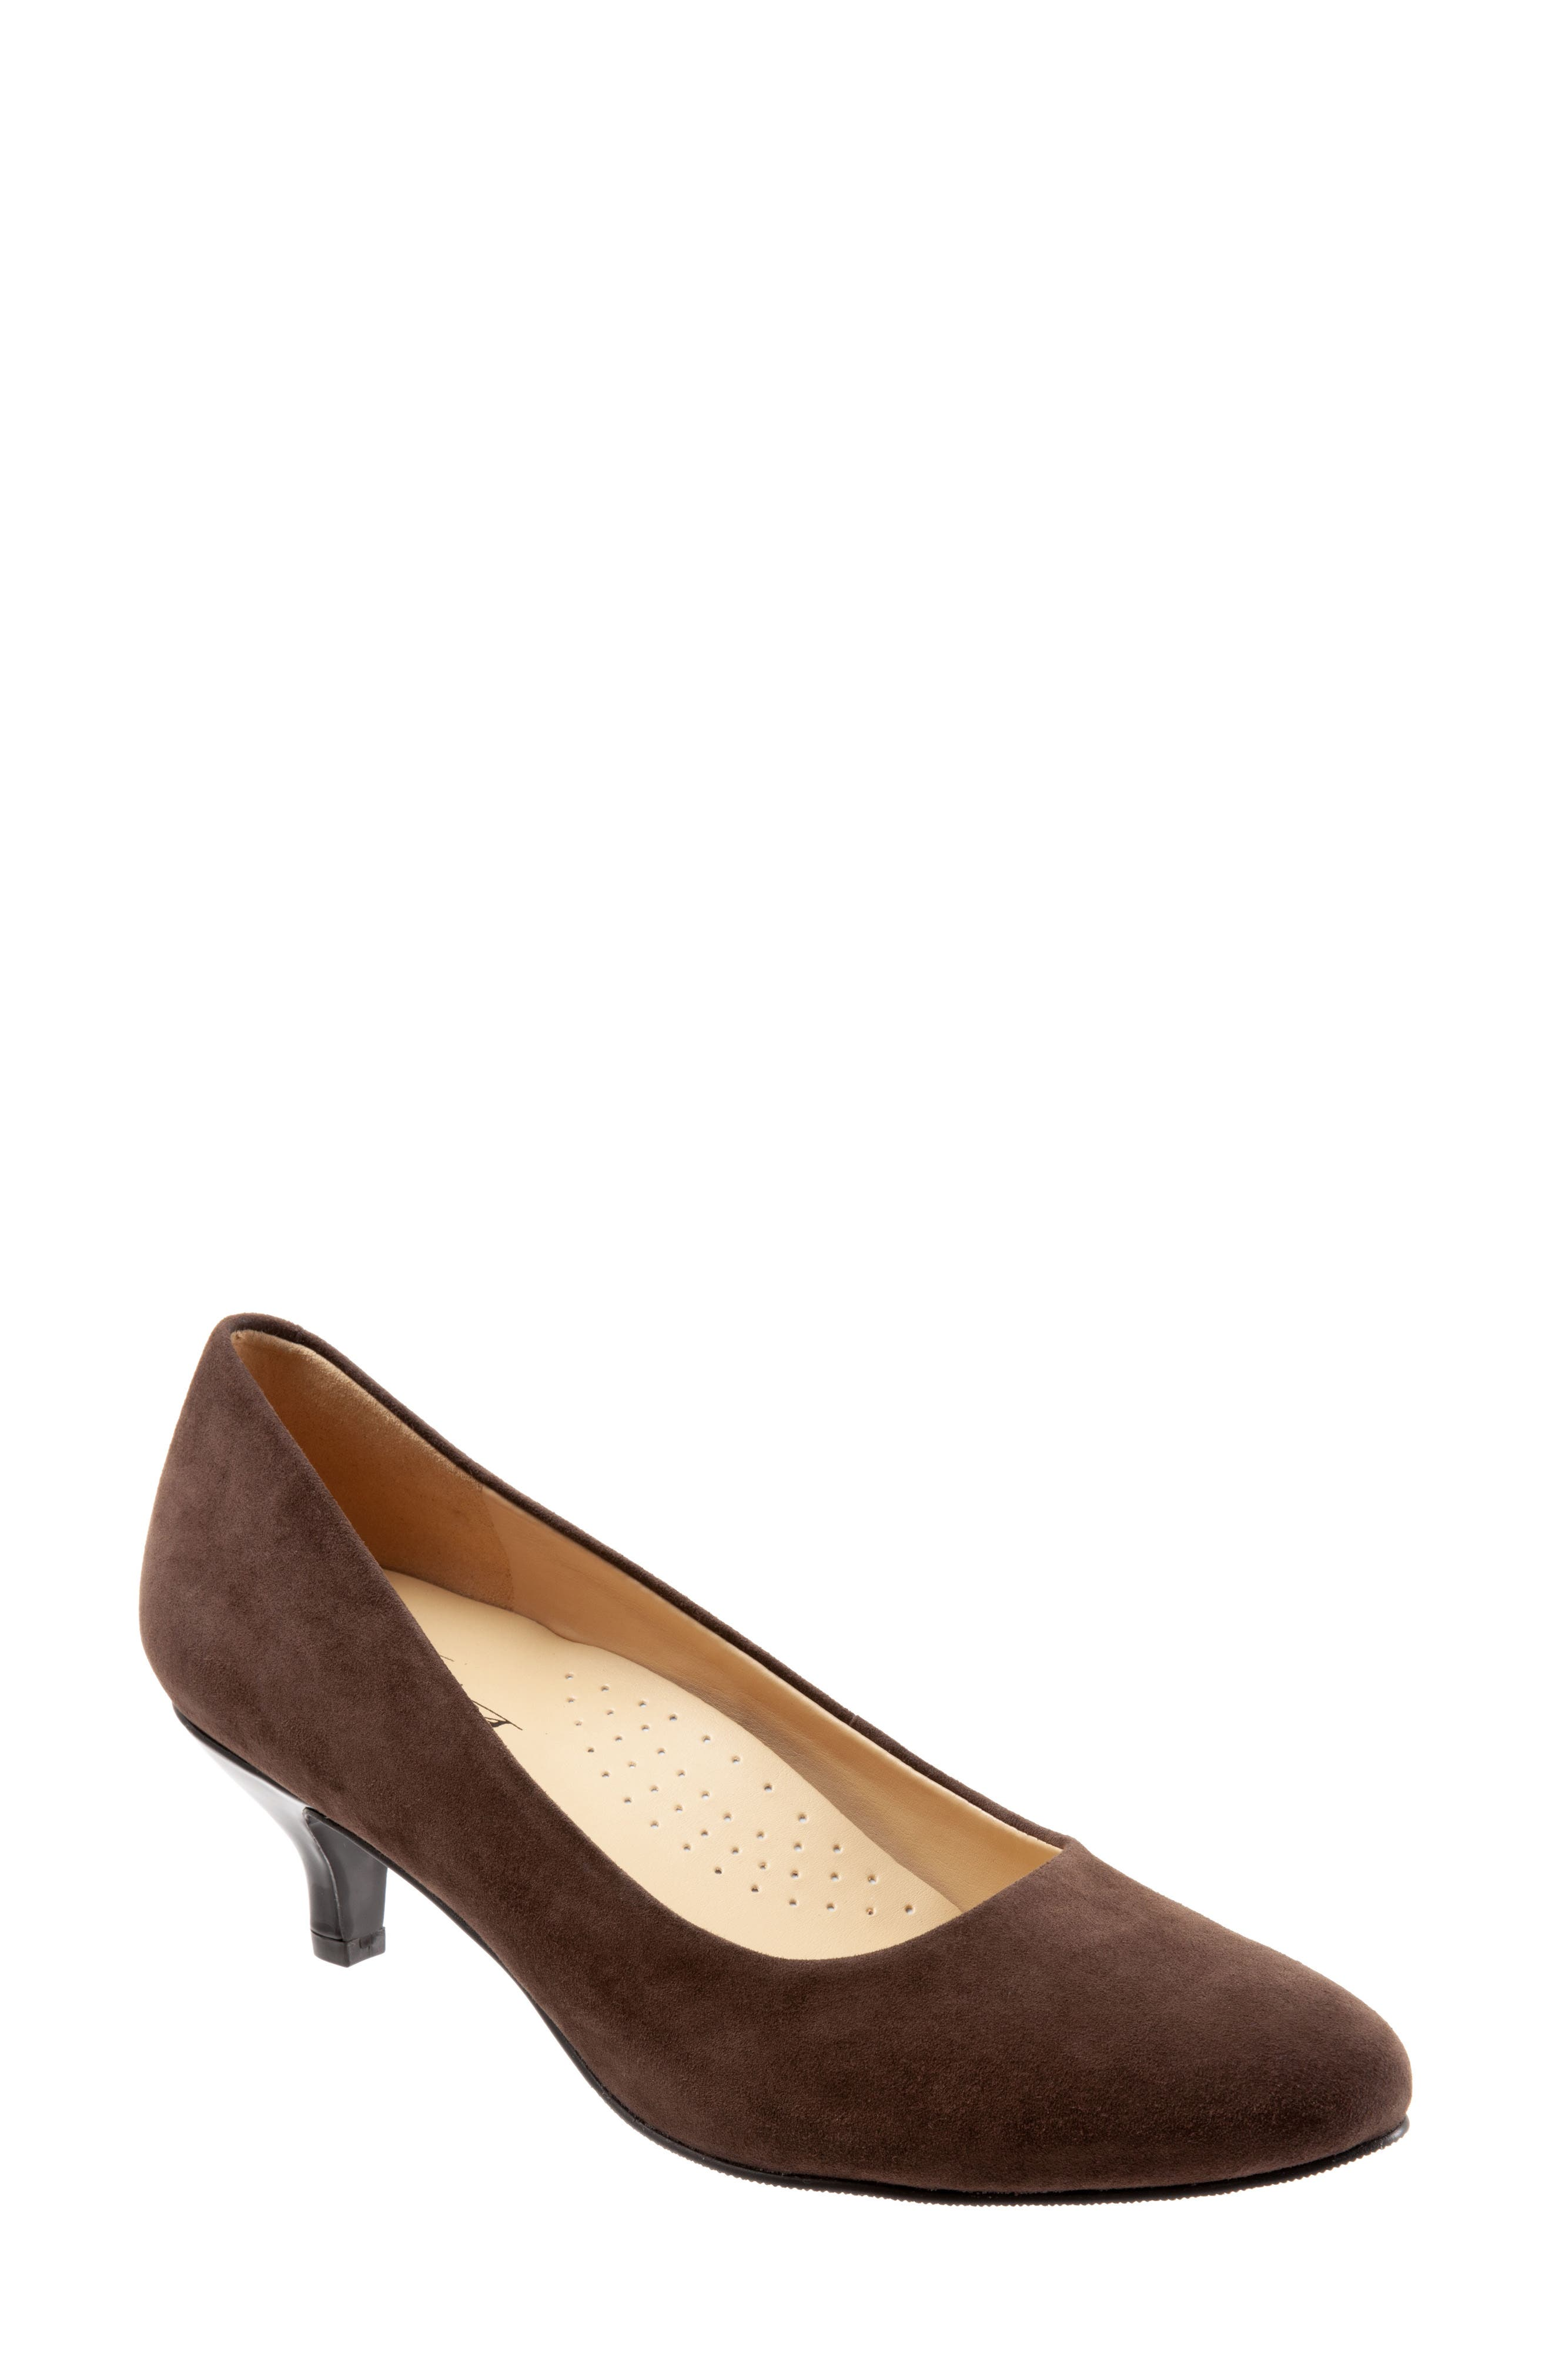 TROTTERS, Kiera Pump, Main thumbnail 1, color, DARK BROWN SUEDE